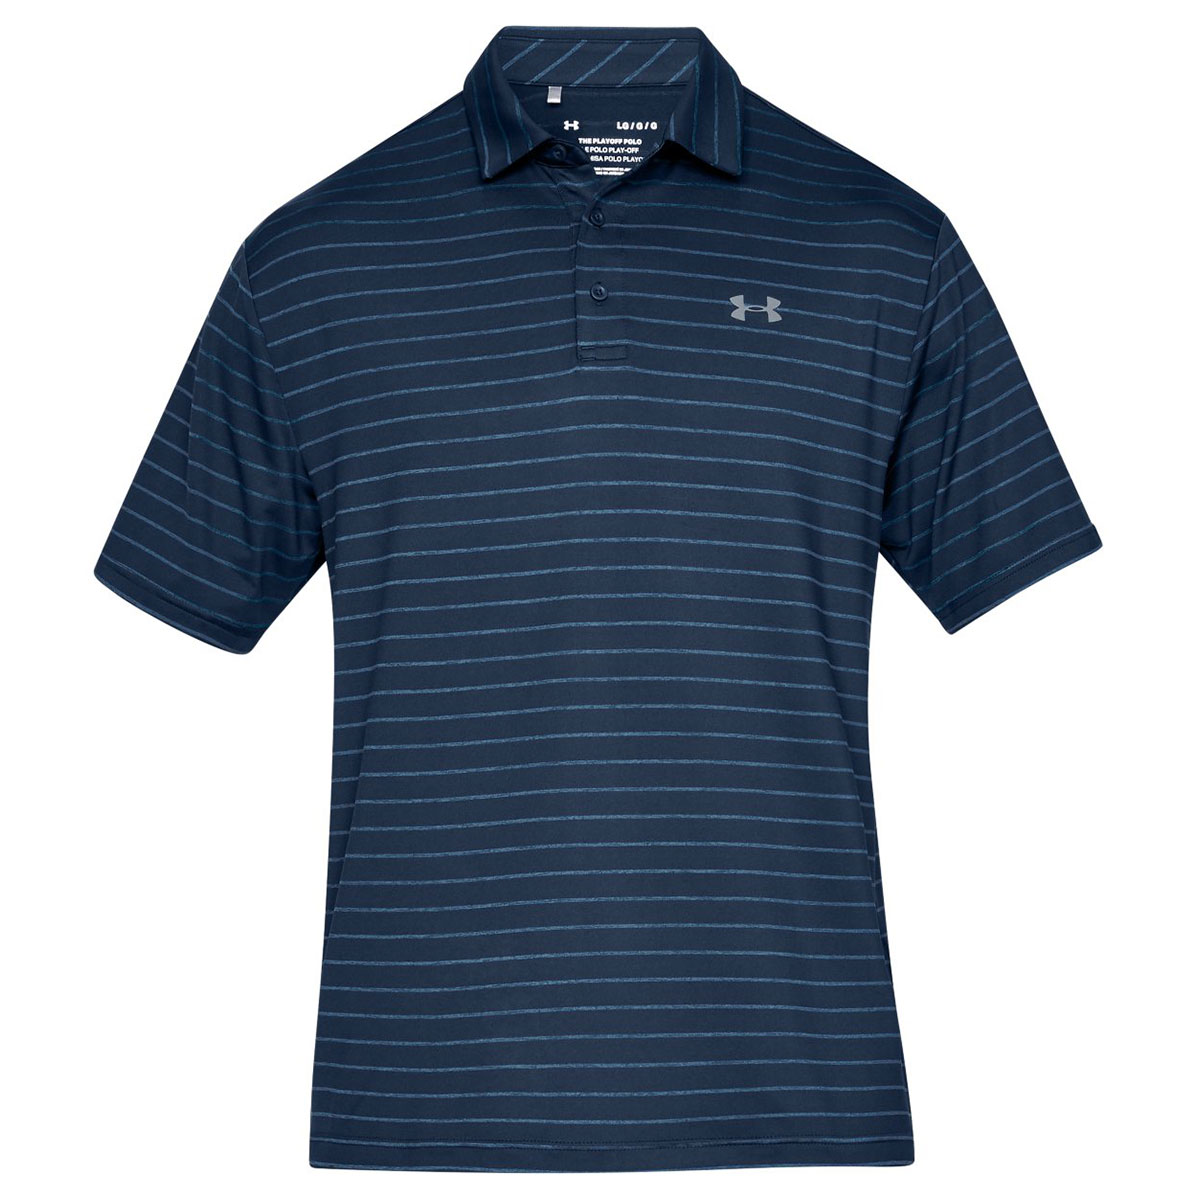 Under-Armour-Mens-2019-Playoff-Polo-2-0-Breathable-Light-Stretch-Polo-Shirt thumbnail 4